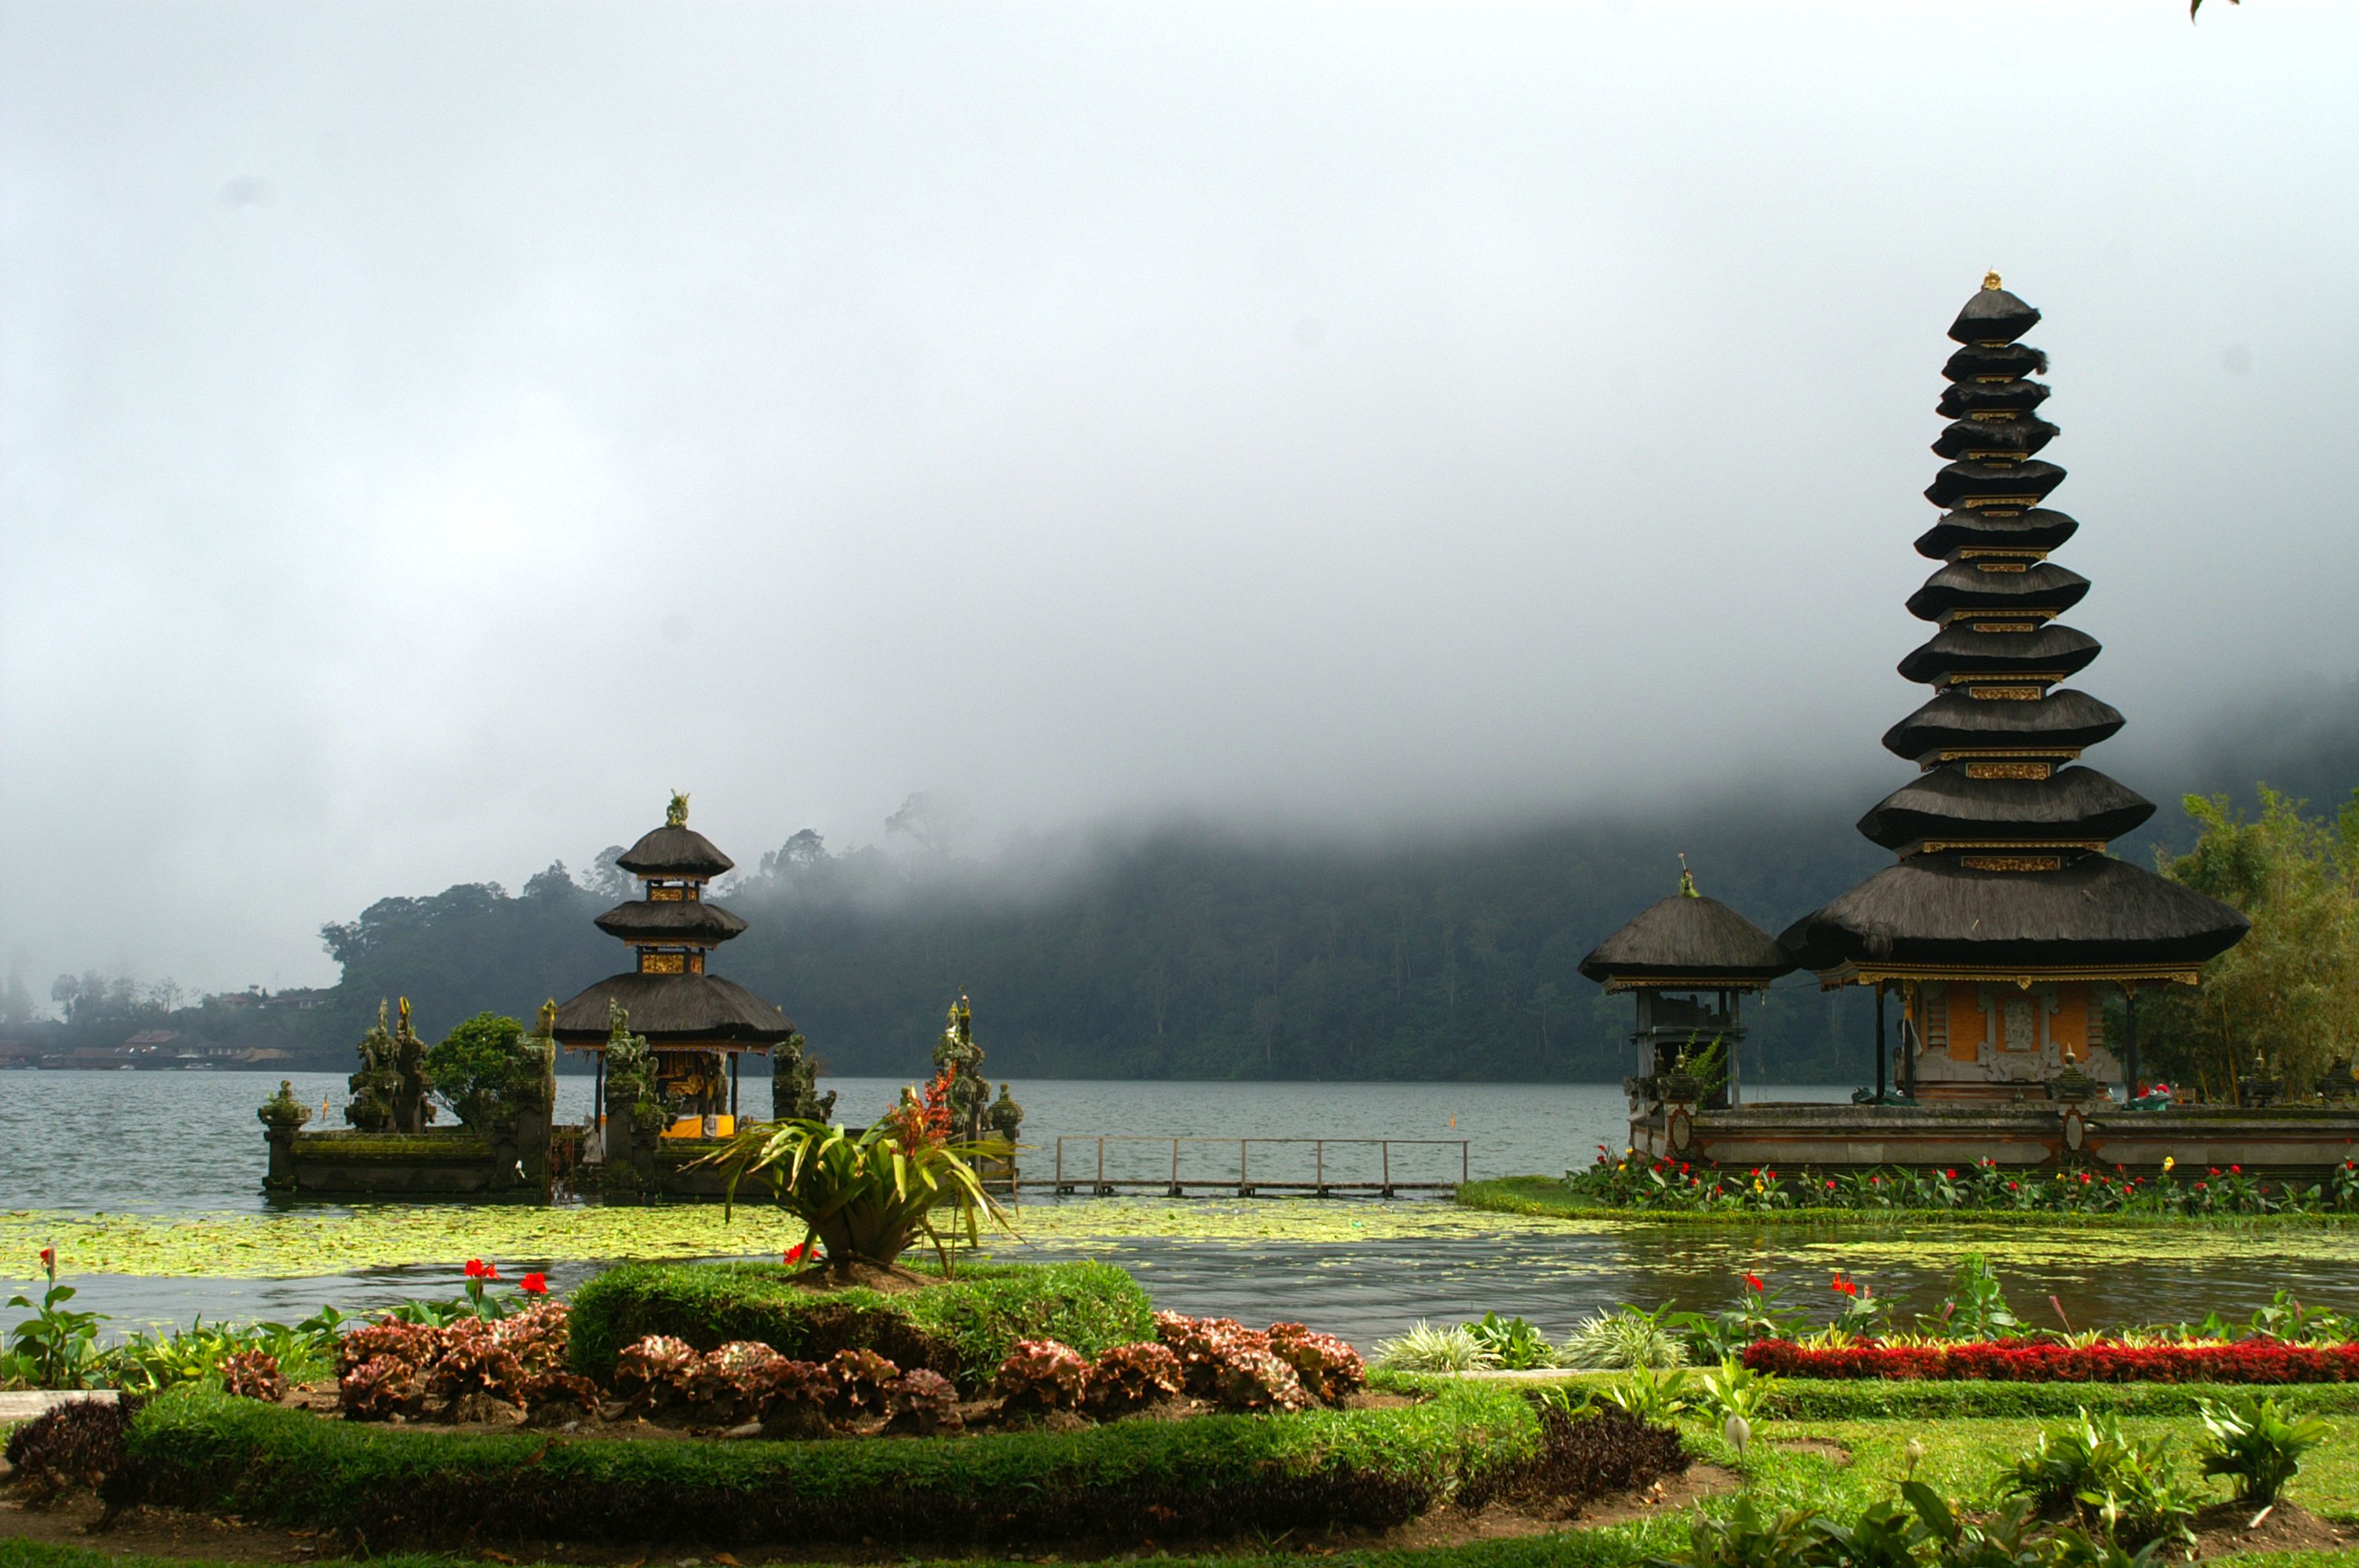 Bali Indonesia  city images : Jakarta images Bali, Indonesia HD wallpaper and background photos ...